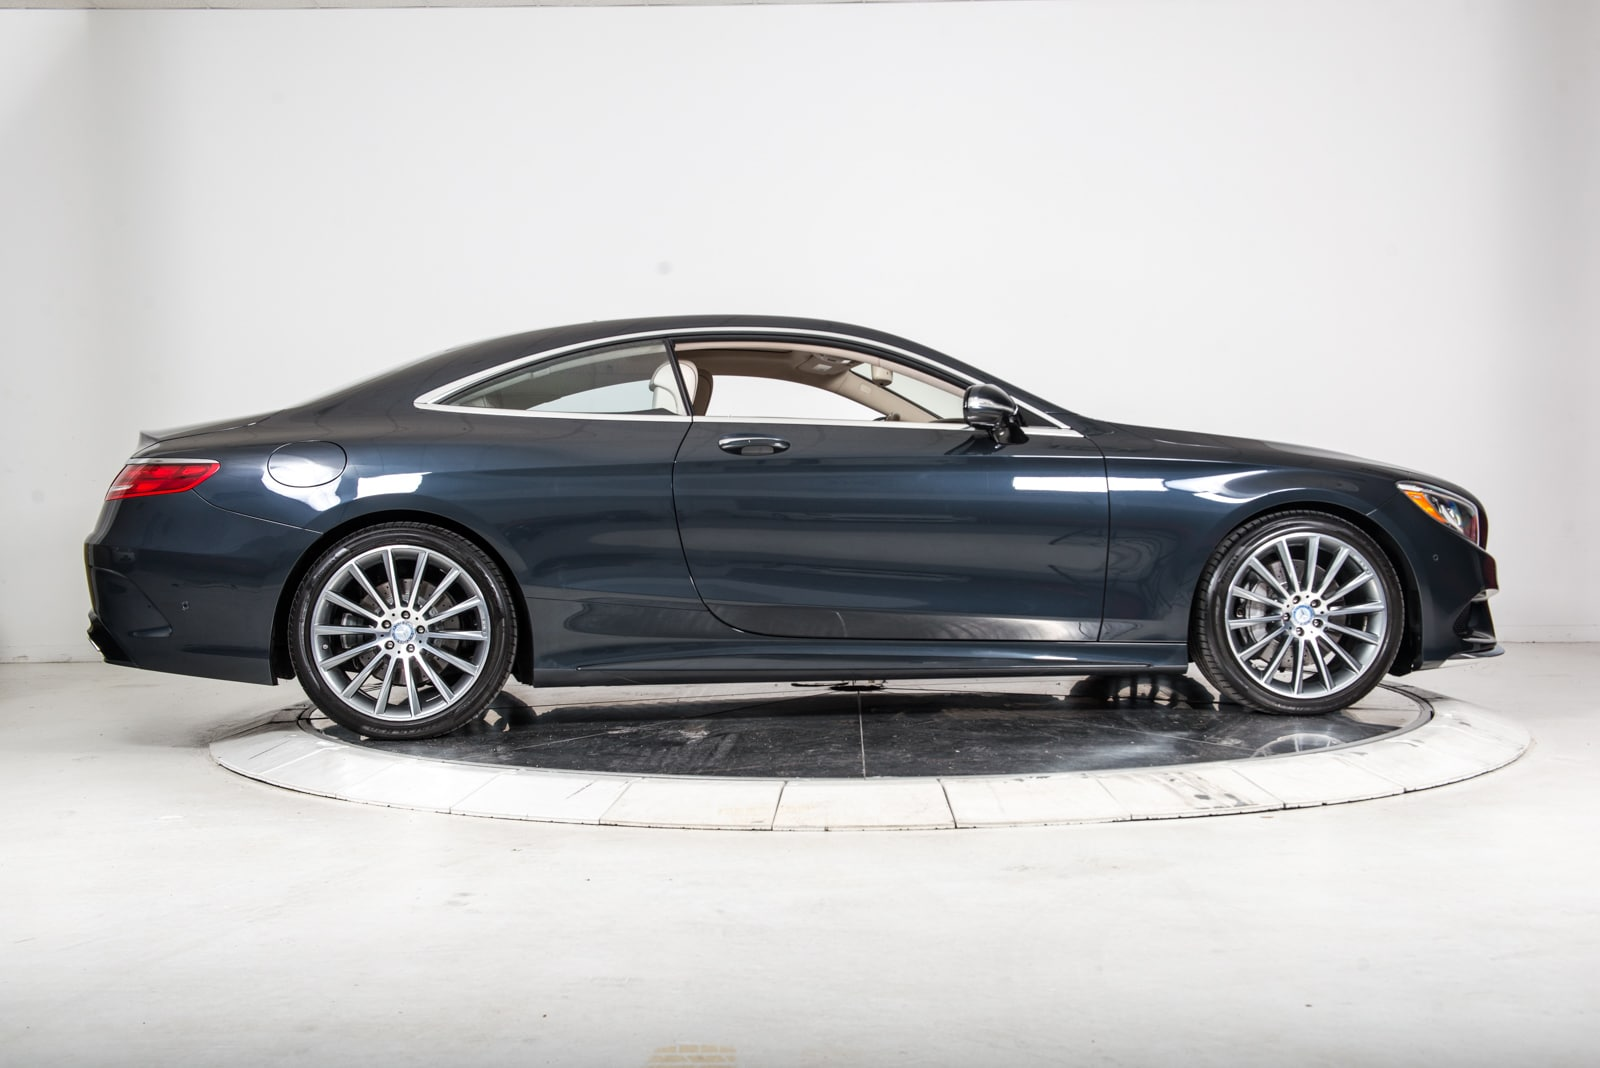 Used 2015 mercedes benz s550 4matic coupe for sale for Used s550 mercedes benz